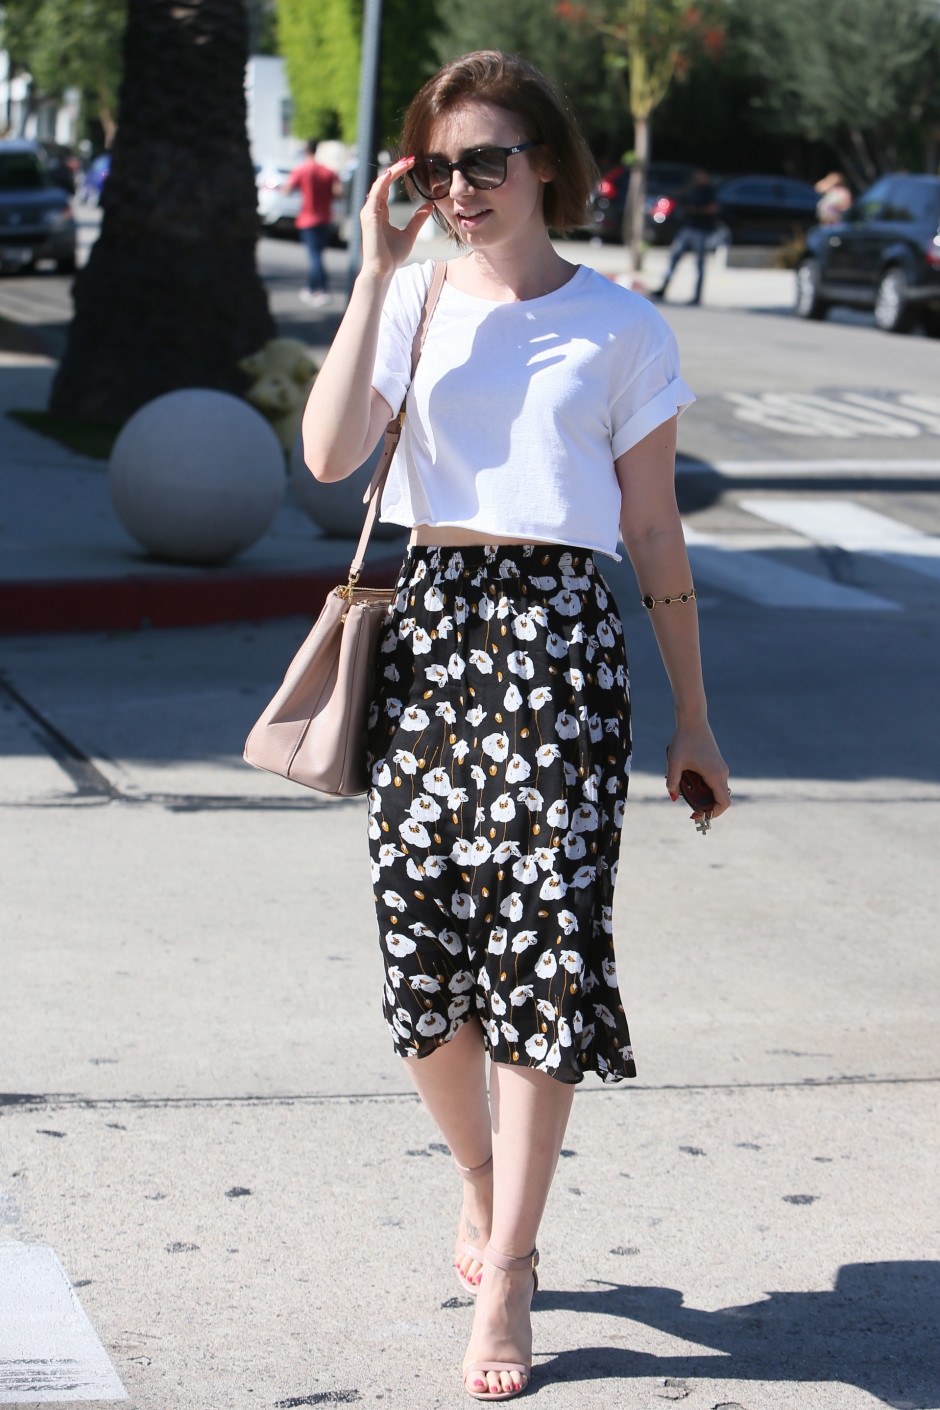 fridays-fashion-obsessions-lily-collins-and-emma-watson-lily_zqnsyk